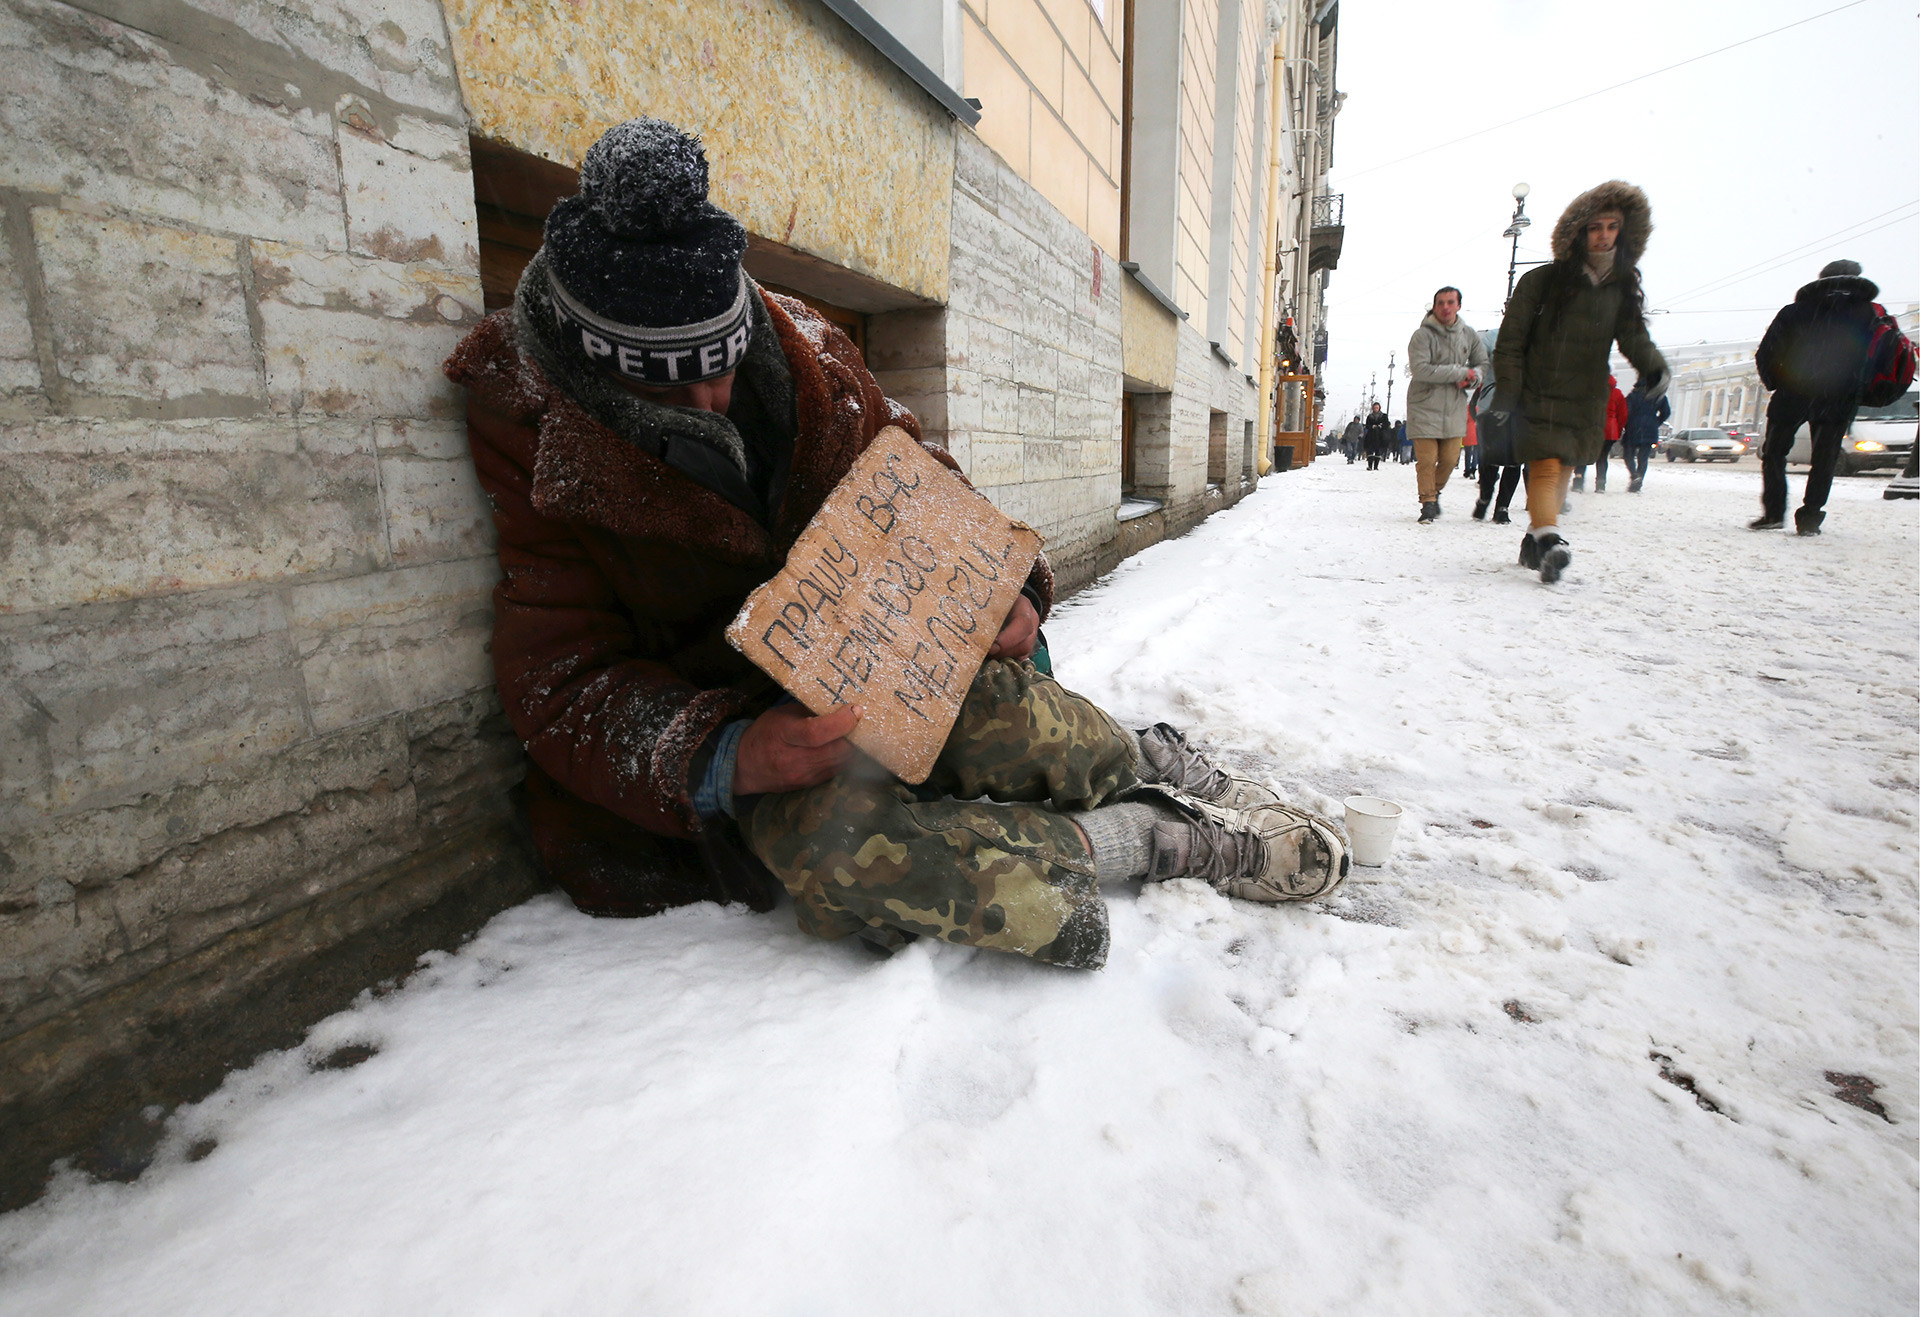 Homeless man sleeping rough, Russia